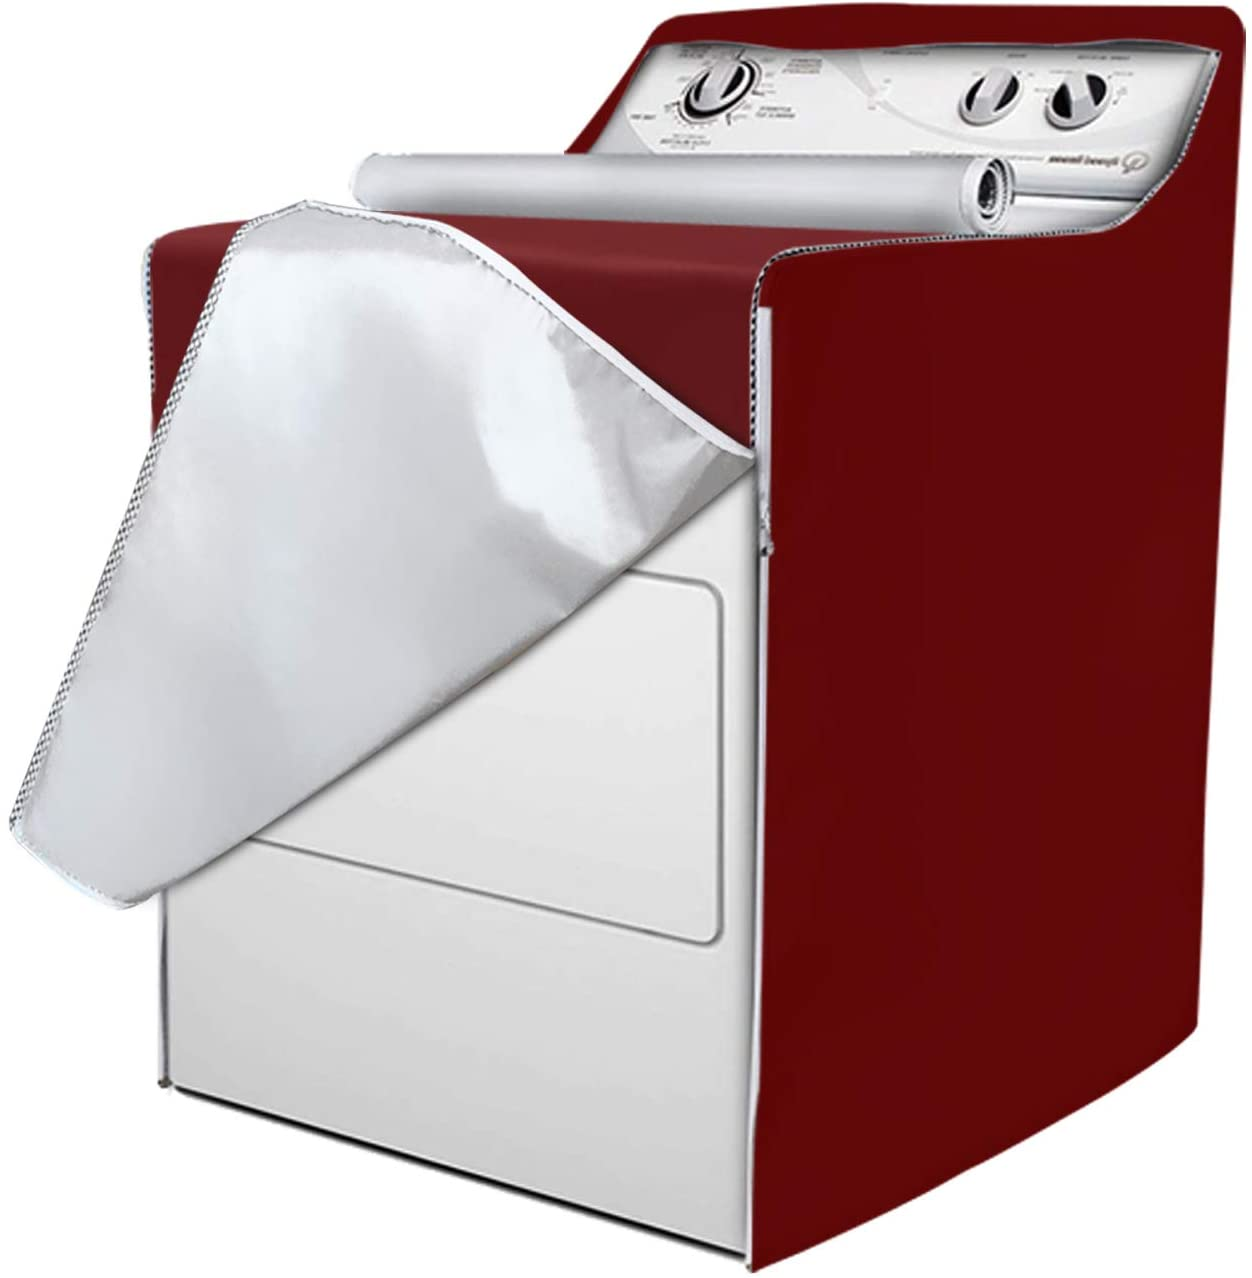 Washing Machine Covers Protector,Washer & Dryer Cover Waterproof with Zipper for Front-Loading Machine and Dry Machine(Red wine,W29D28H40in)